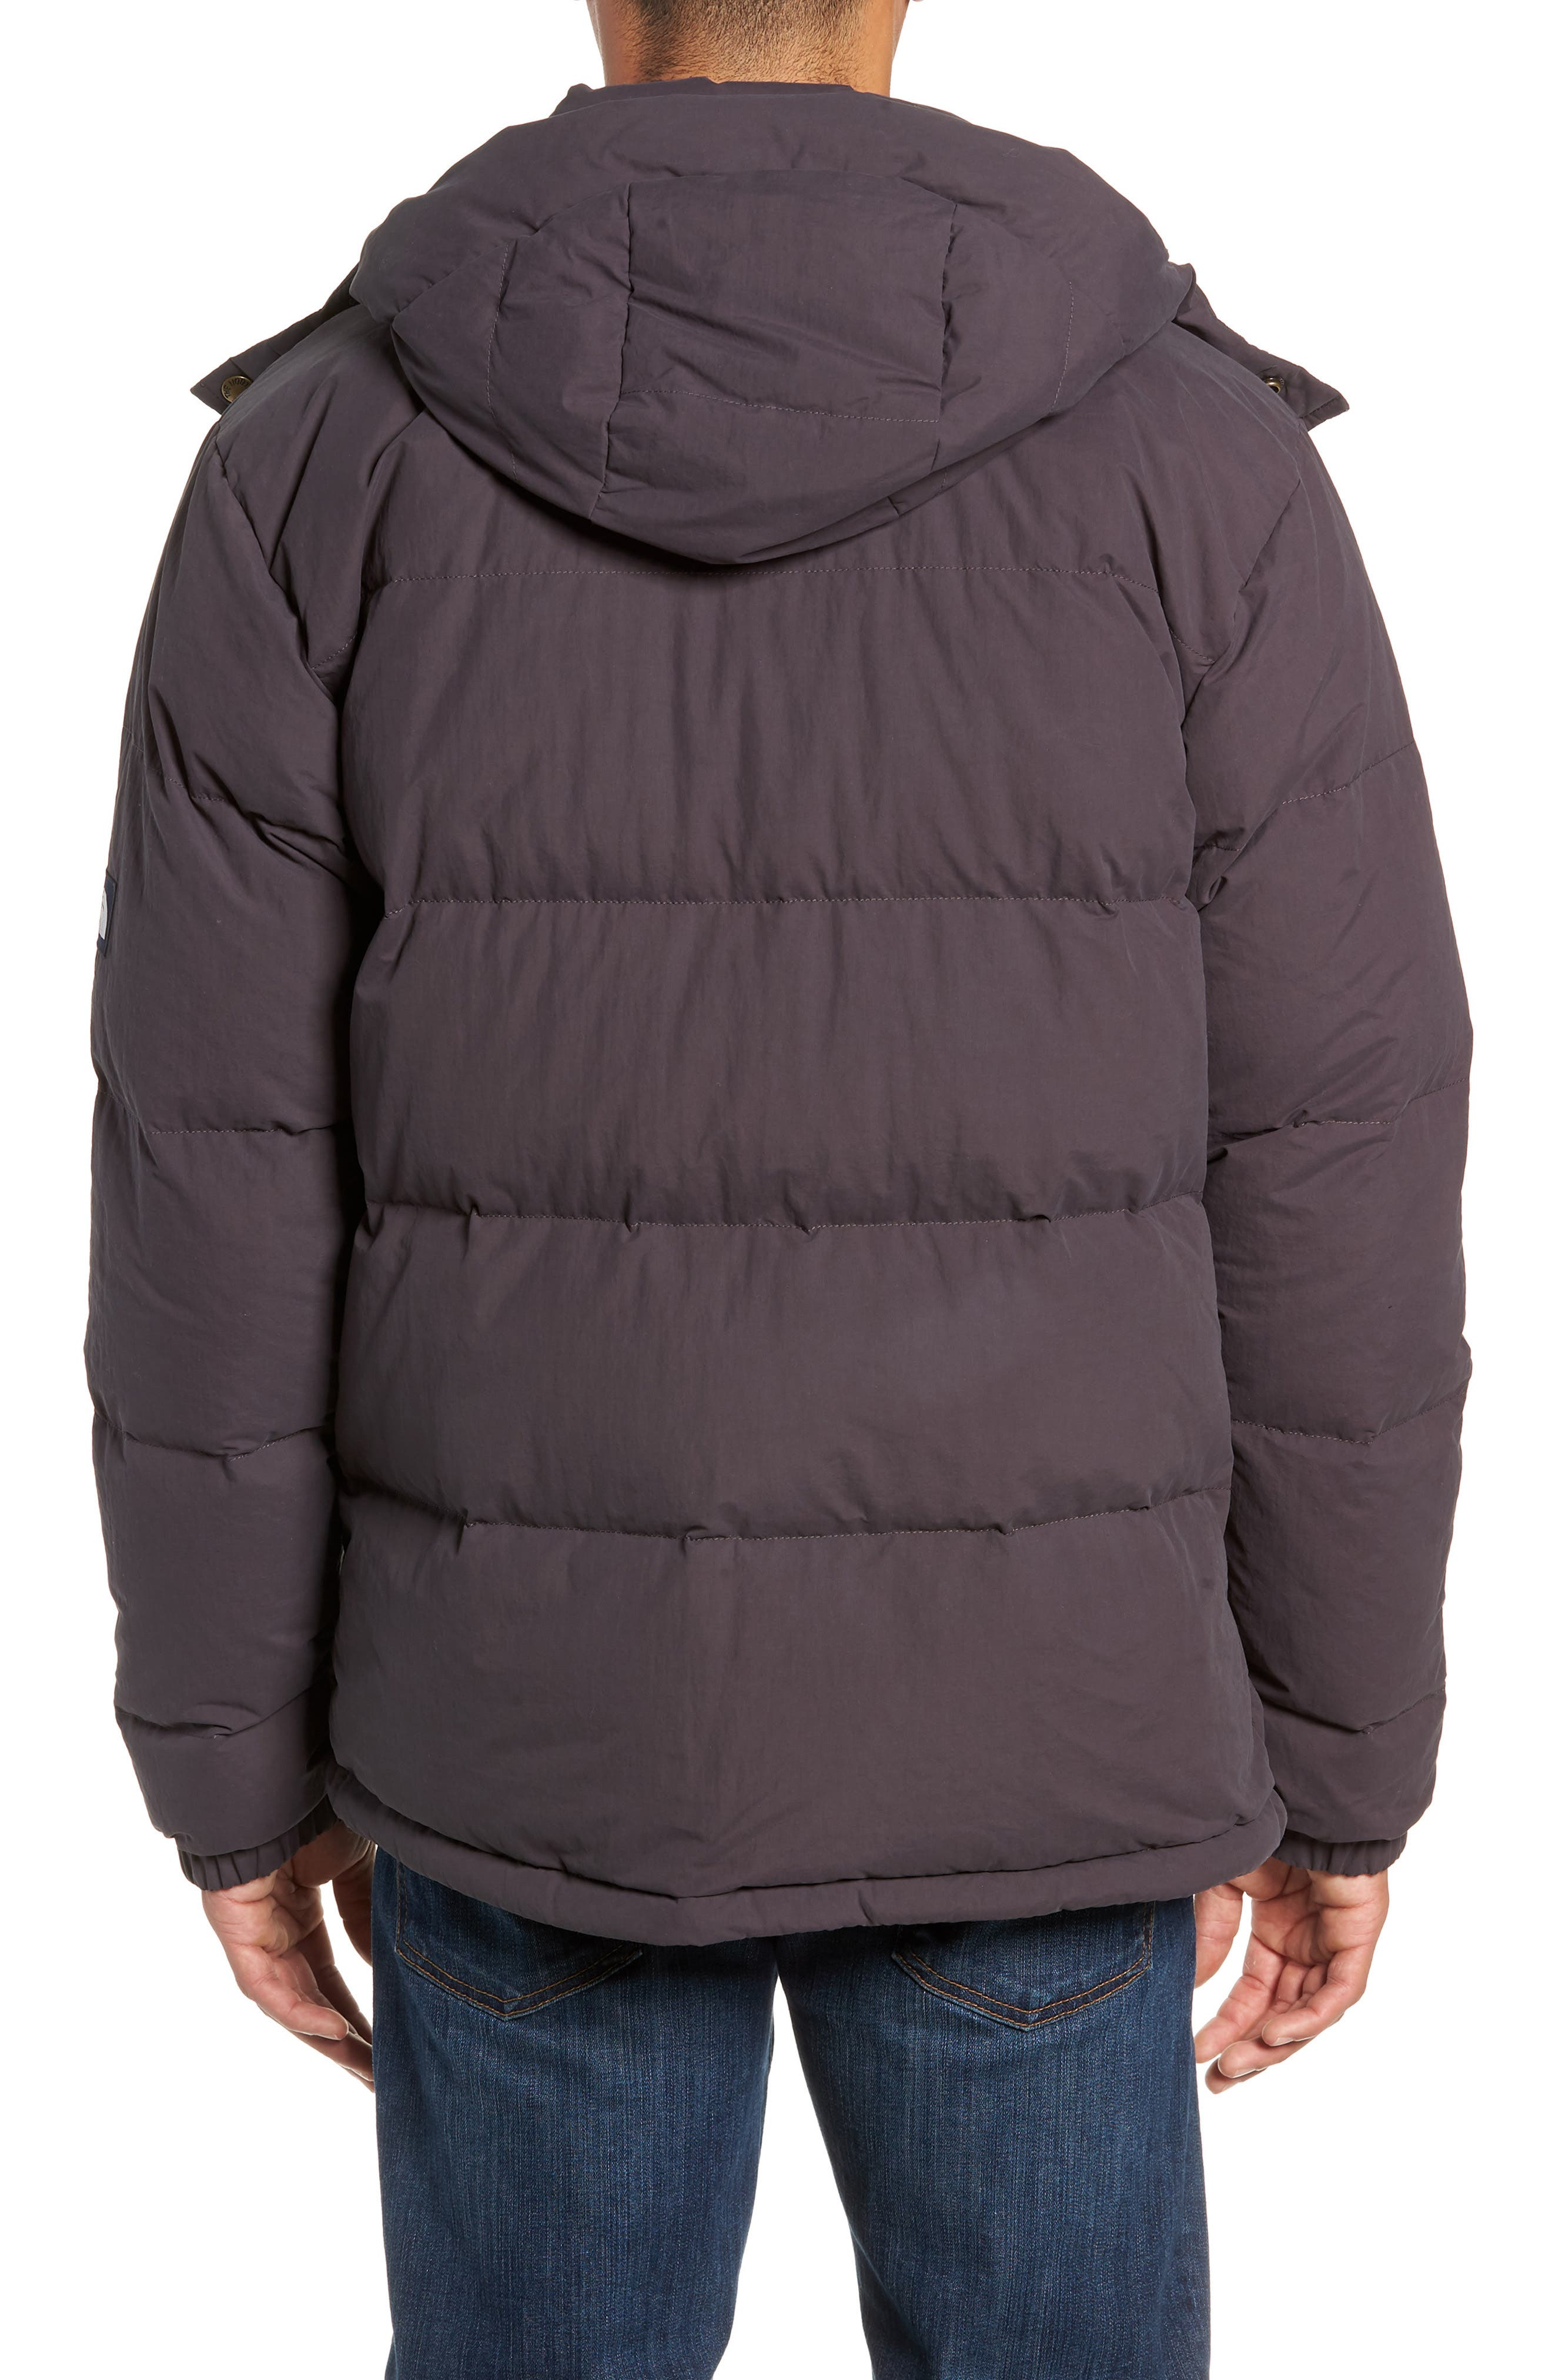 Sierra 2.0 Water Resistant Down Insulated Hooded Parka,                             Alternate thumbnail 2, color,                             WEATHERED BLACK